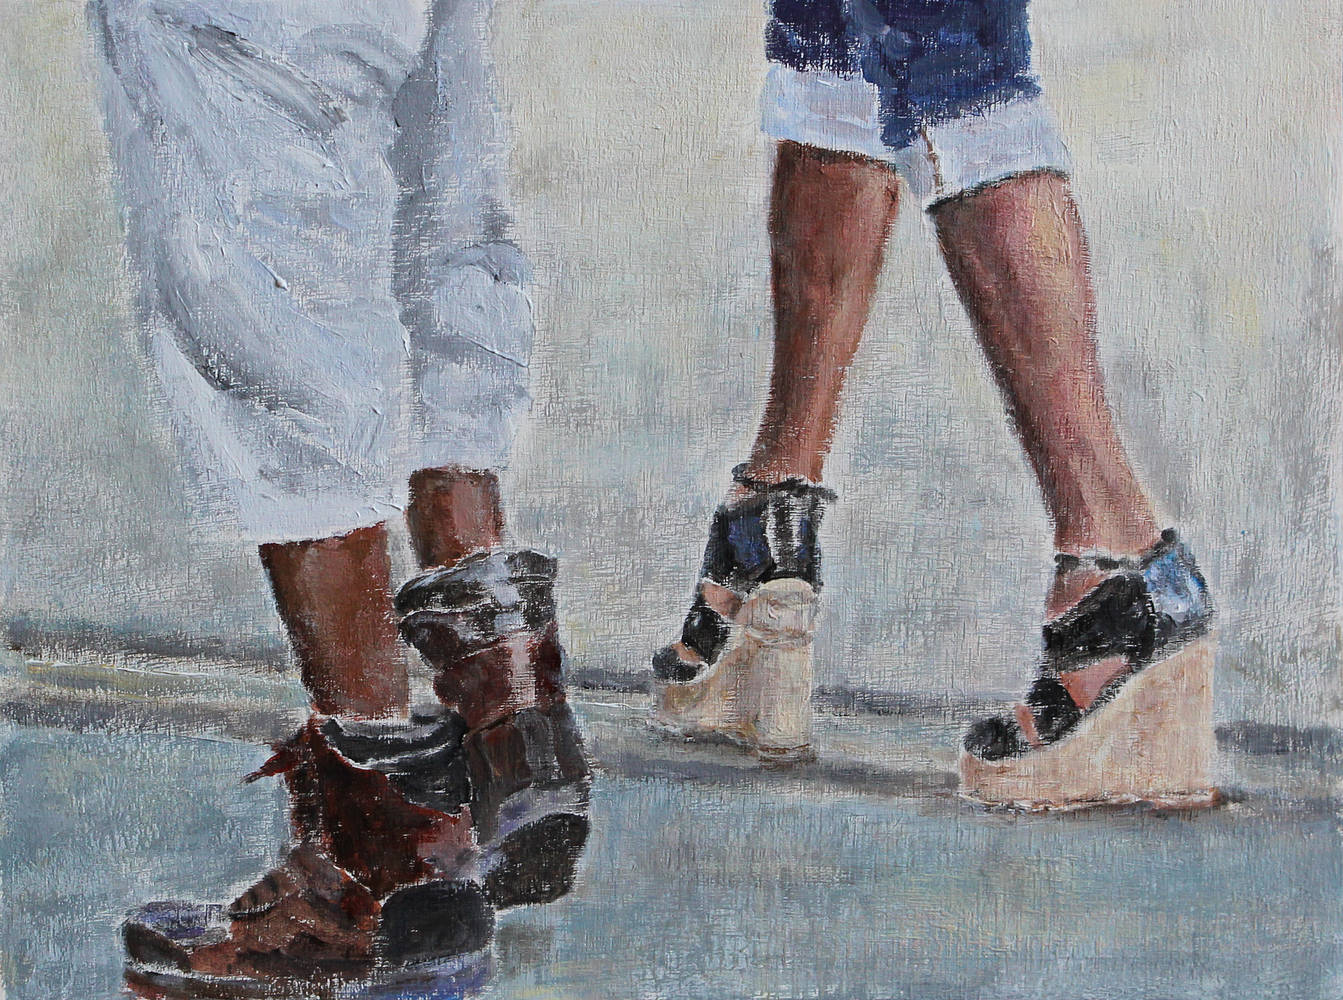 Acrylic painting Shoe Series II by Olga De klein